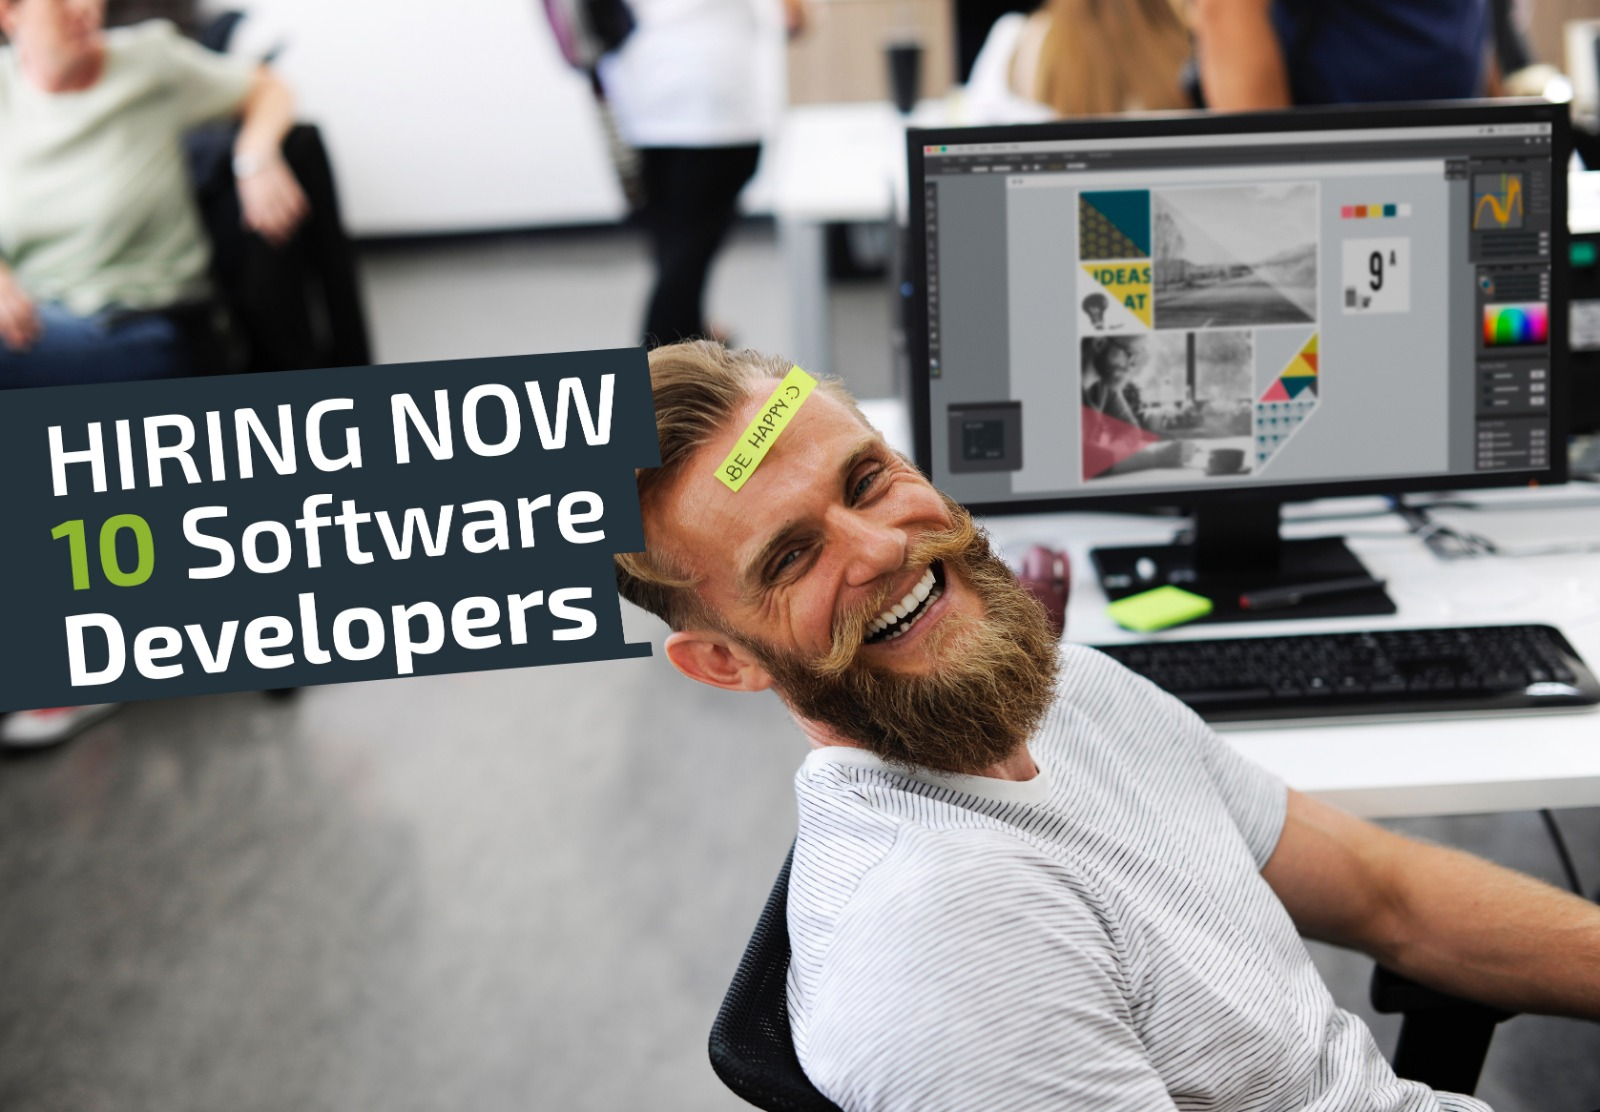 Hiring Now 10 Software Developers